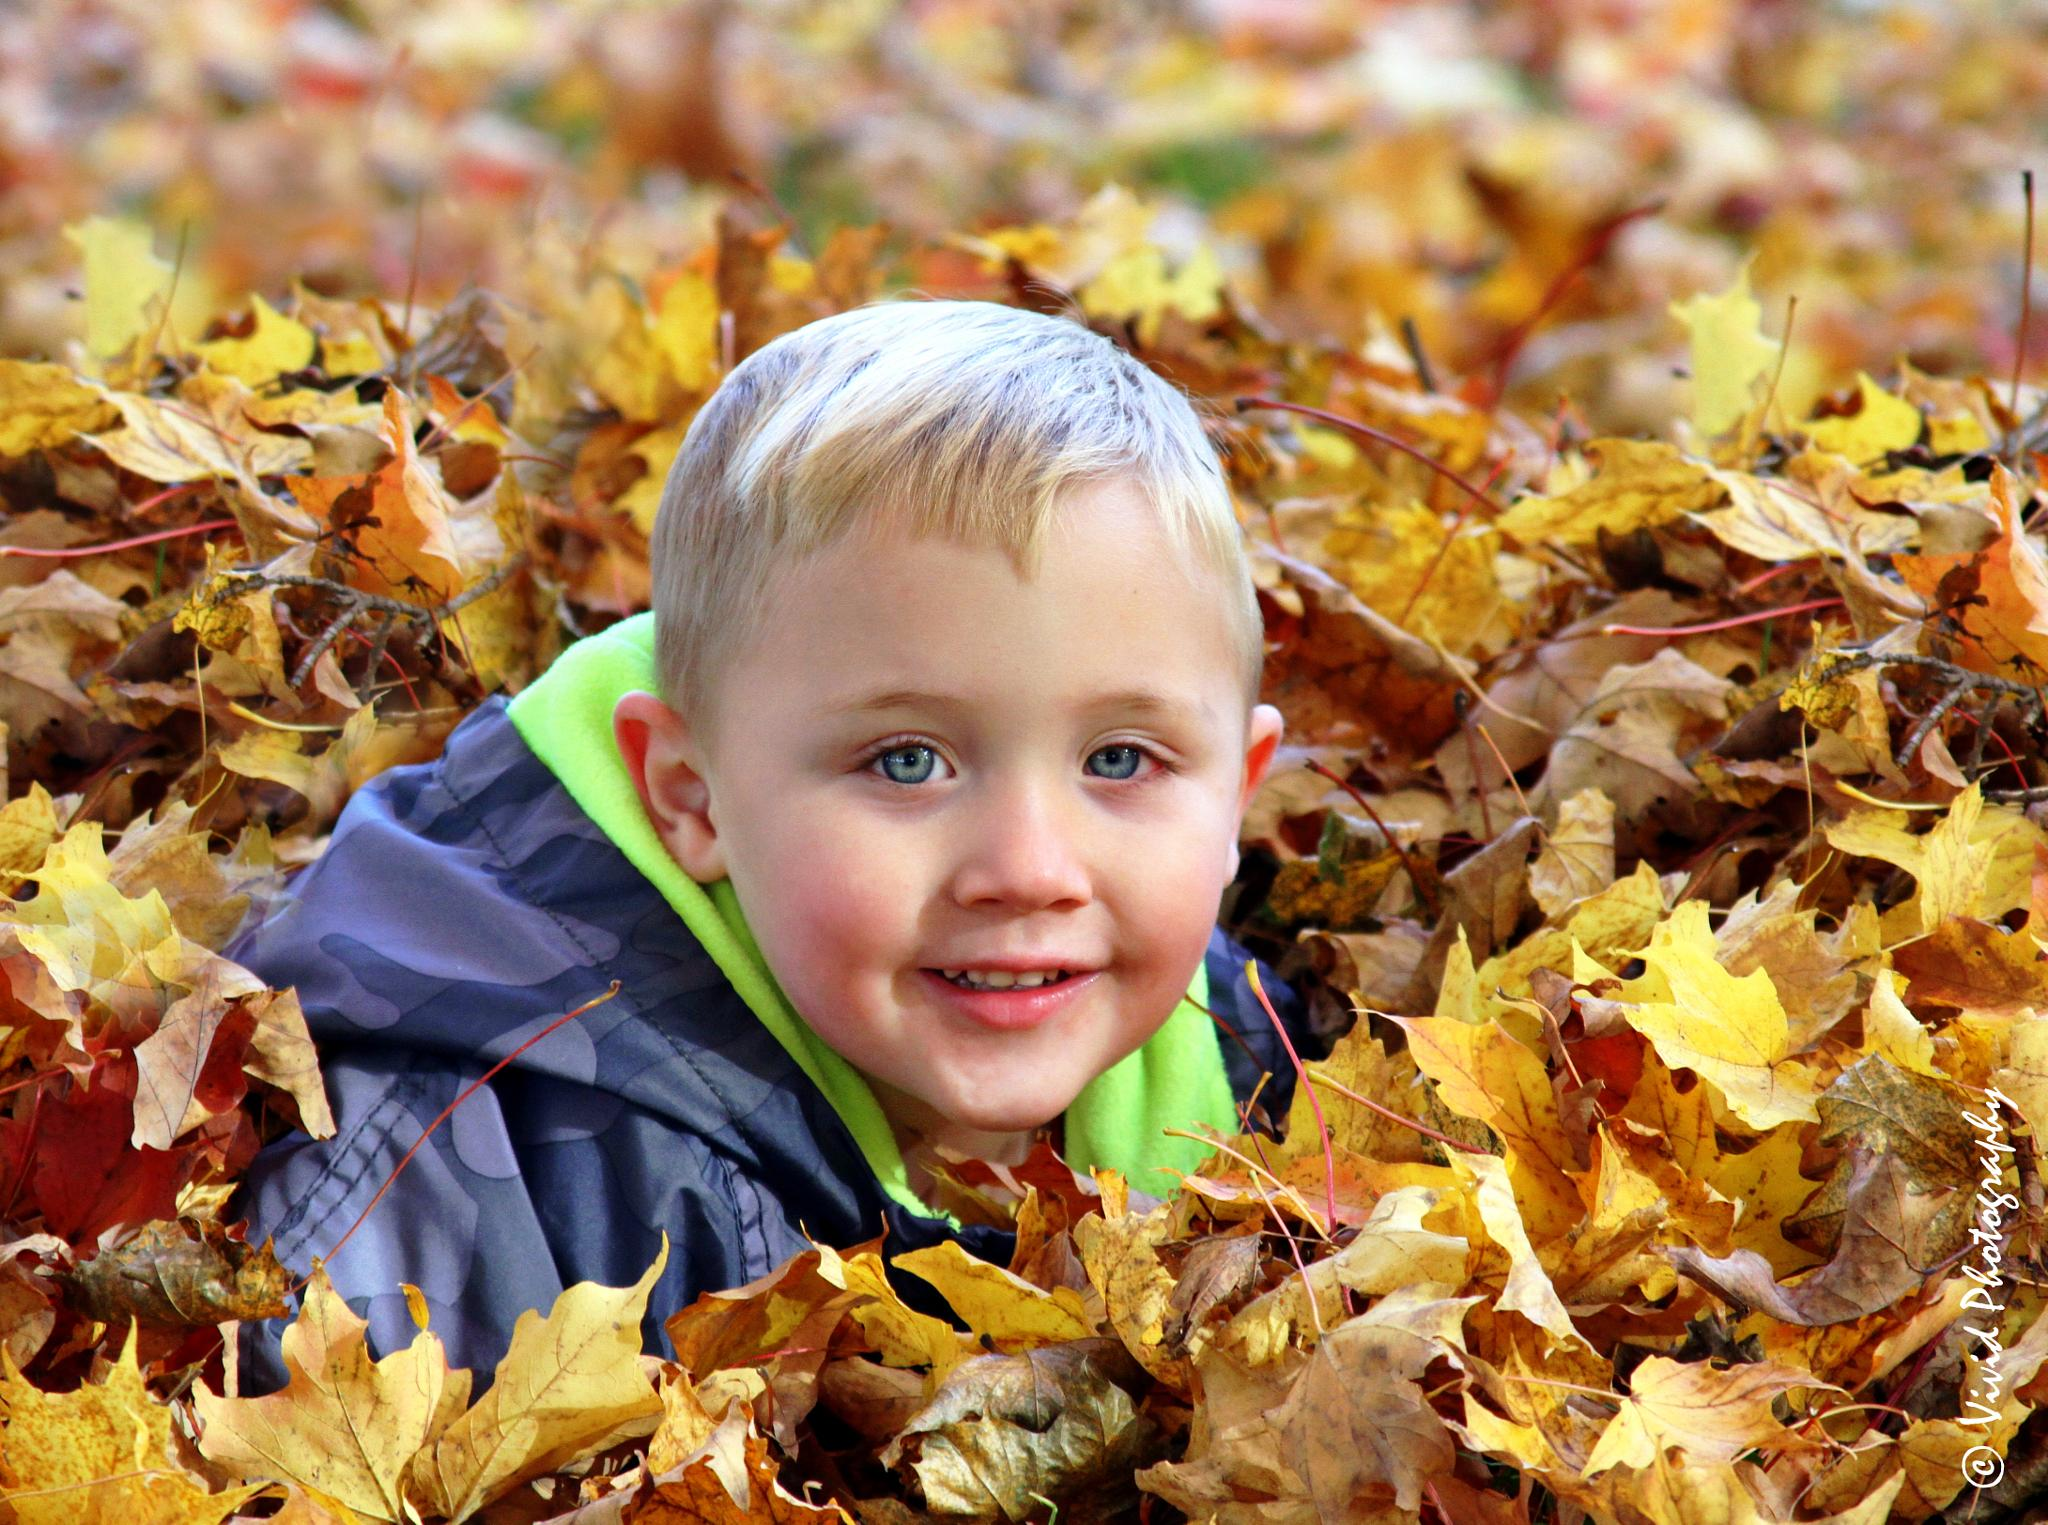 Autumn Leaves Colourful Playground  by Judee Schofield